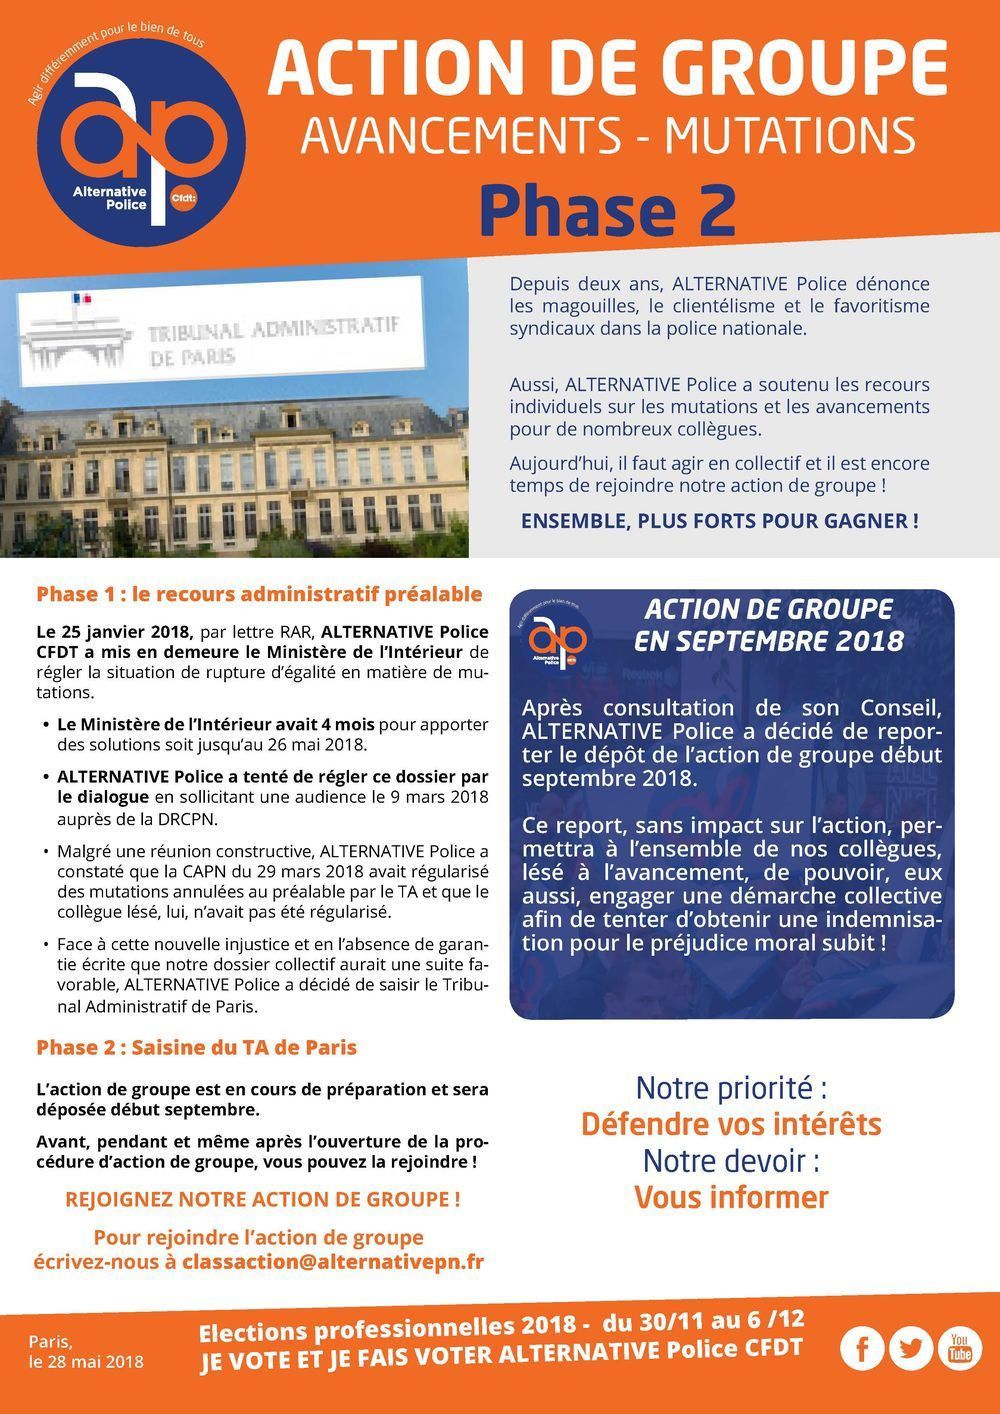 Action de groupe - Phase 2